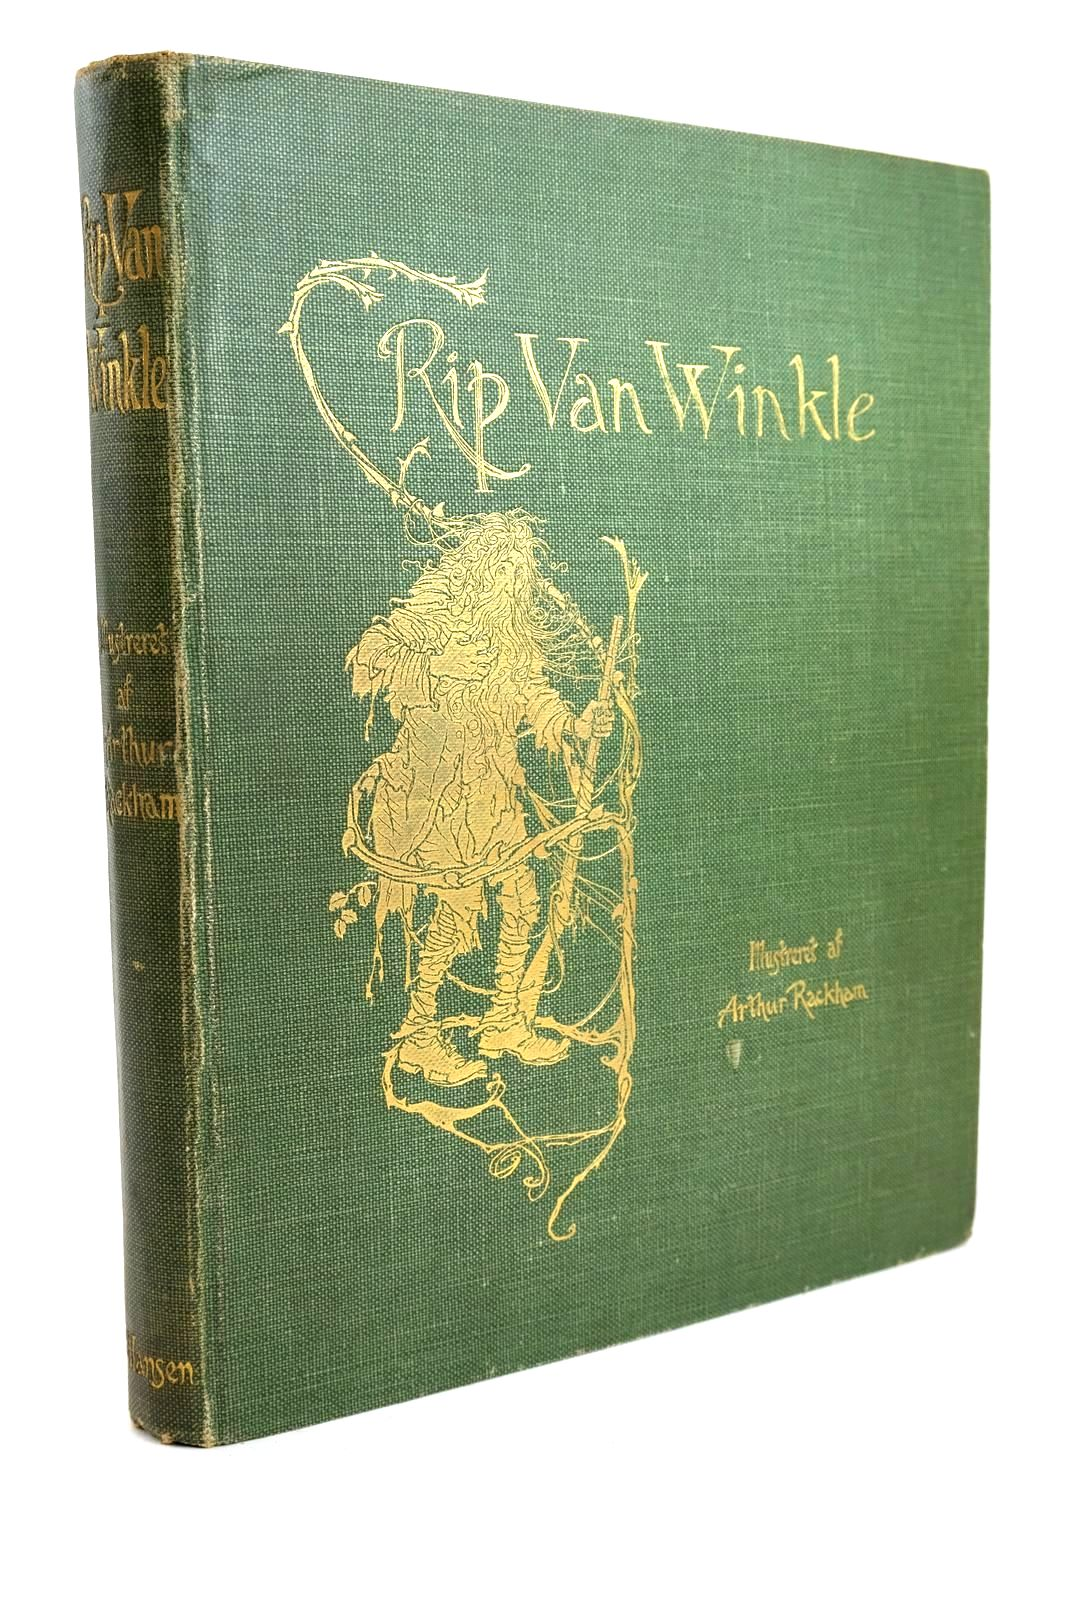 Photo of RIP VAN WINKLE written by Irving, Washington illustrated by Rackham, Arthur published by Peter Hansens Forlag (STOCK CODE: 1320489)  for sale by Stella & Rose's Books